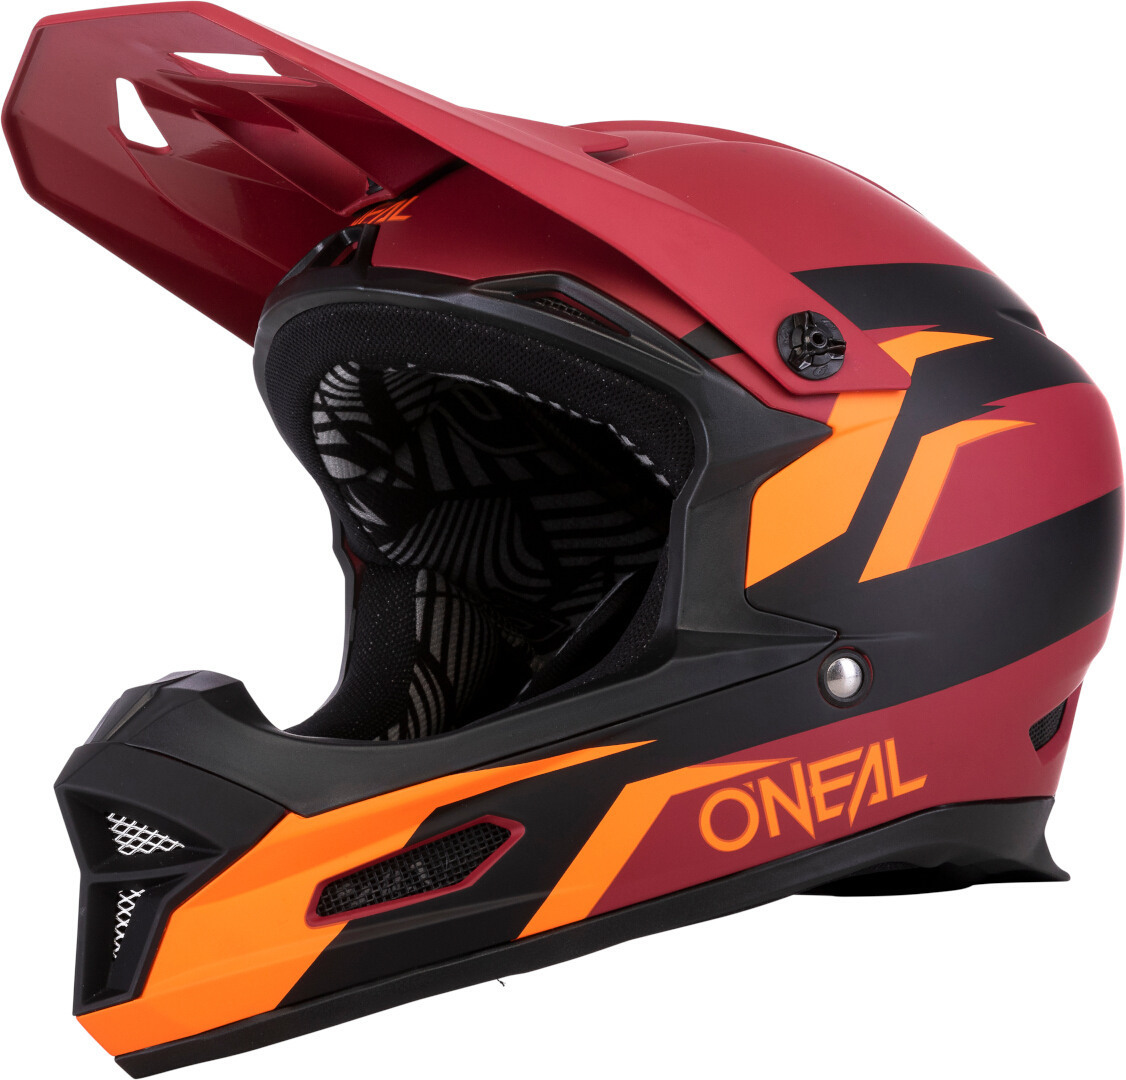 Oneal Fury Stage Downhill Helm, rot-orange, Größe XS, rot-orange, Größe XS